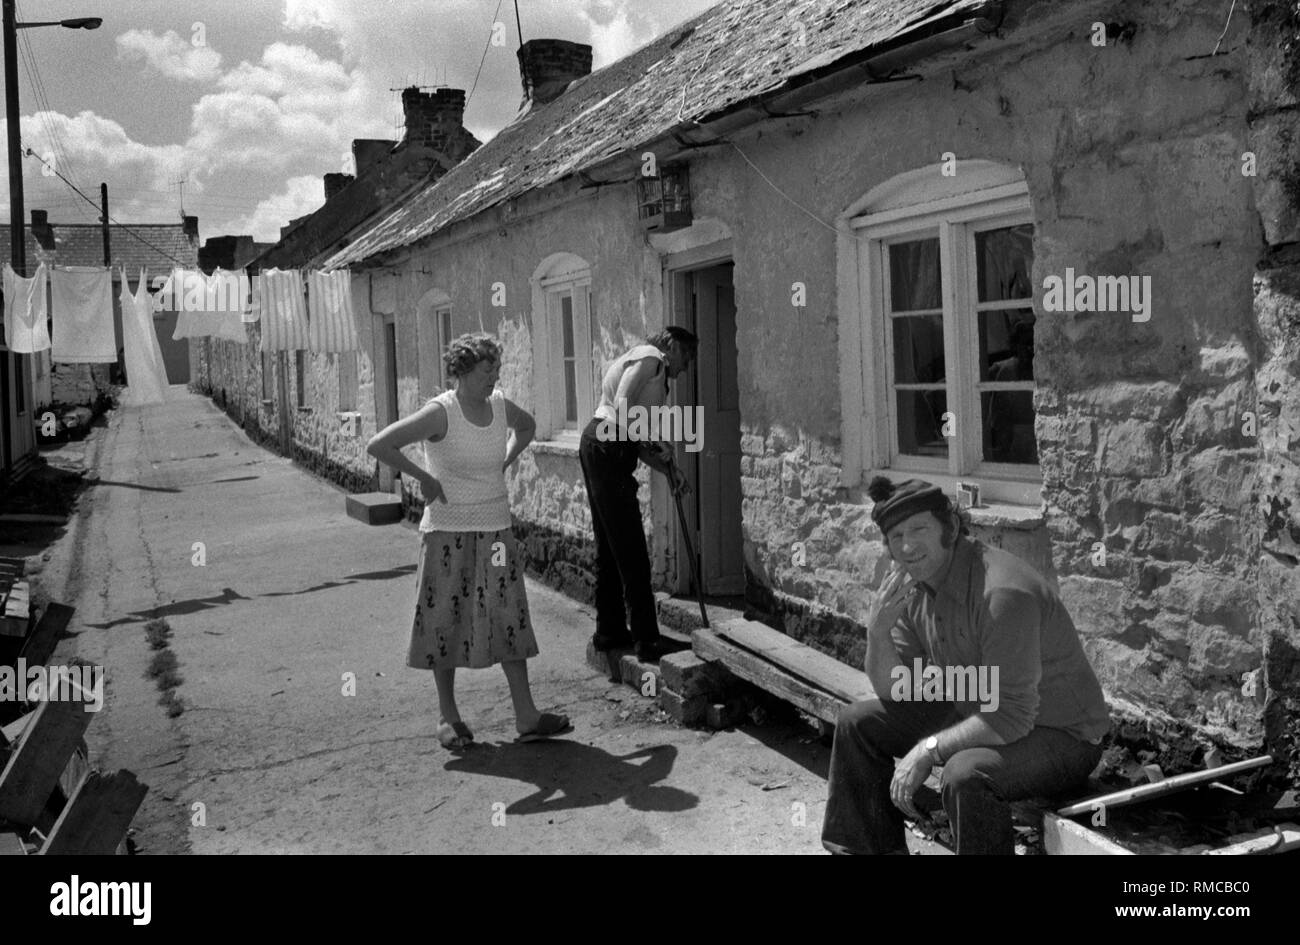 1970s  fisherman sitting outside the fisherman's cottages  Limerick, in County Limerick, Eire.  West Coast of Southern Ireland 70s HOMER SYKES - Stock Image